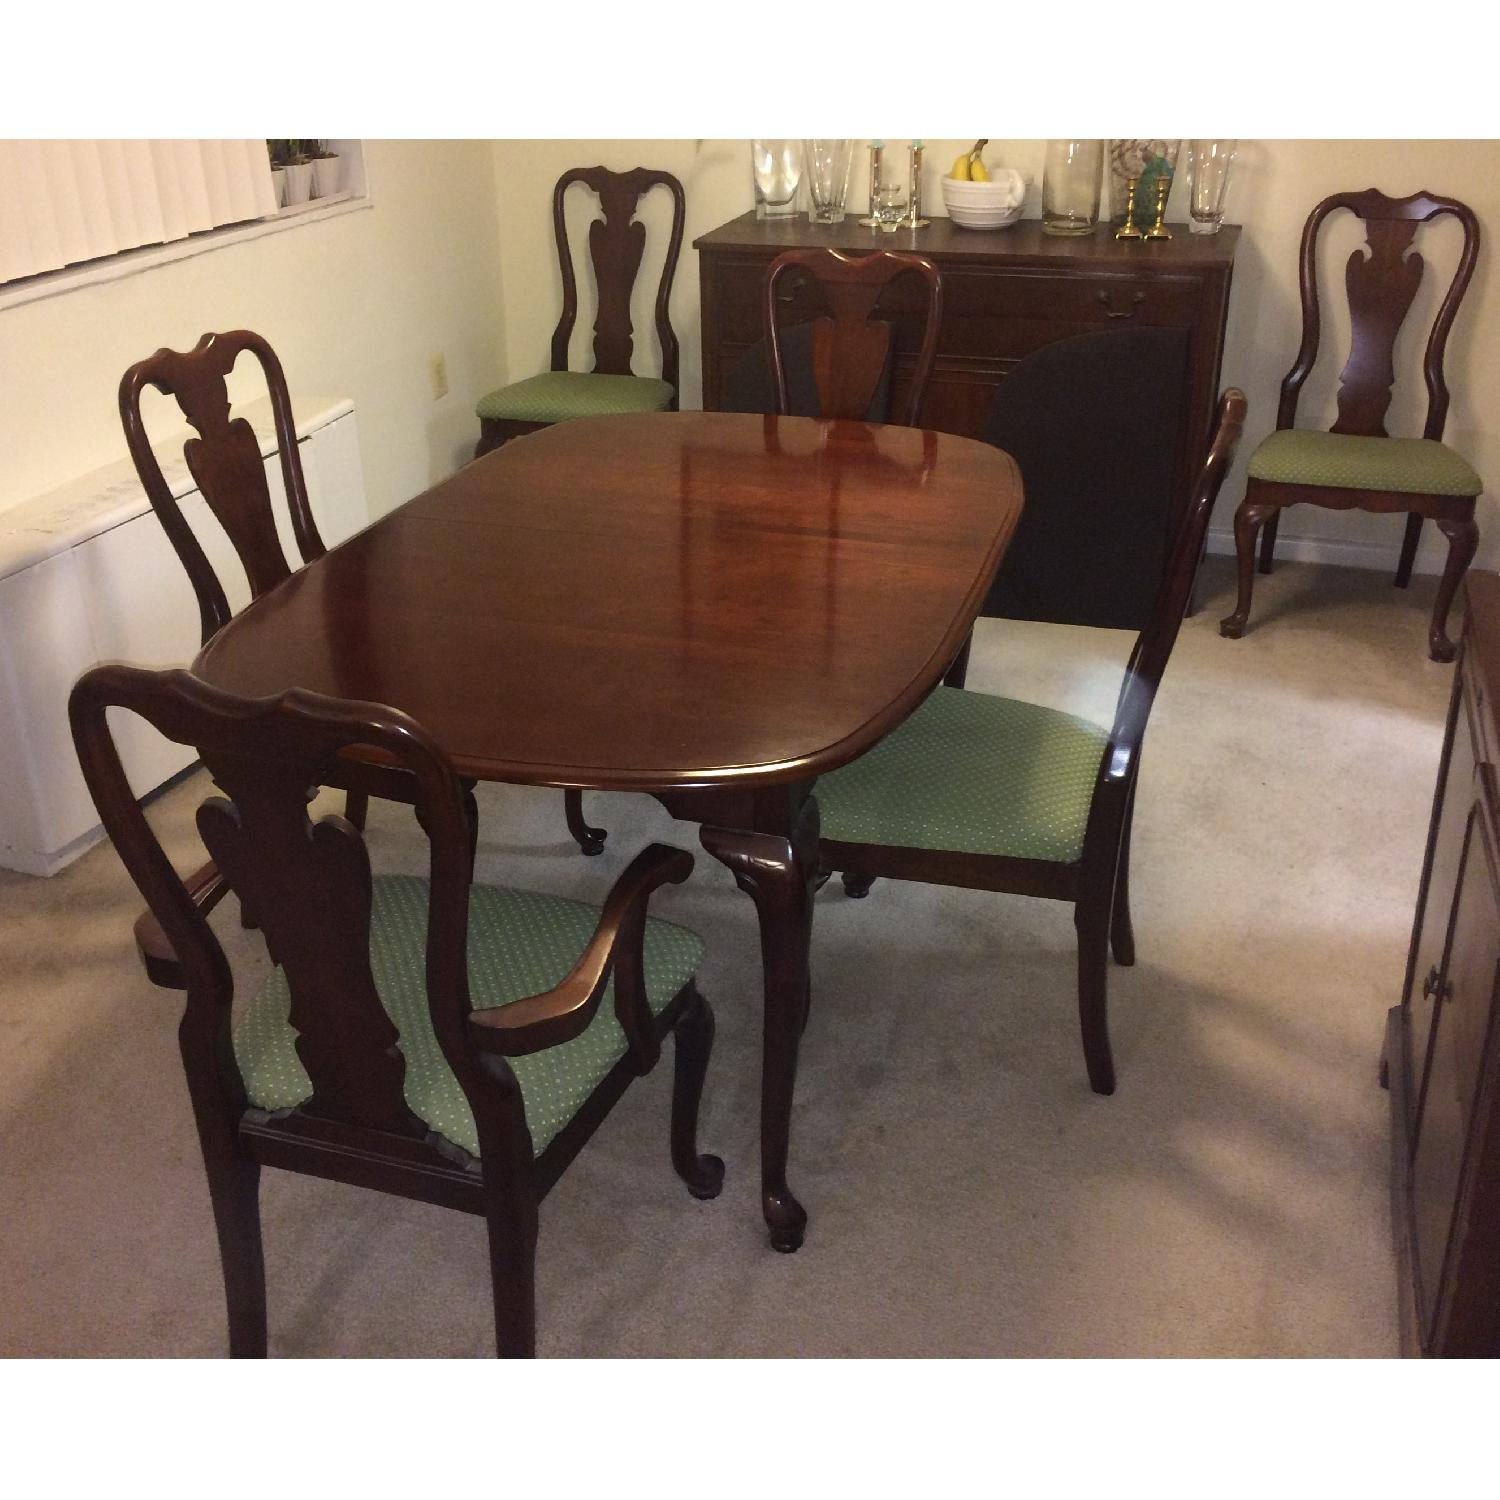 Cherryvale American Drew 7-Piece Extendable Oval Dining Set in Cherry - image-1